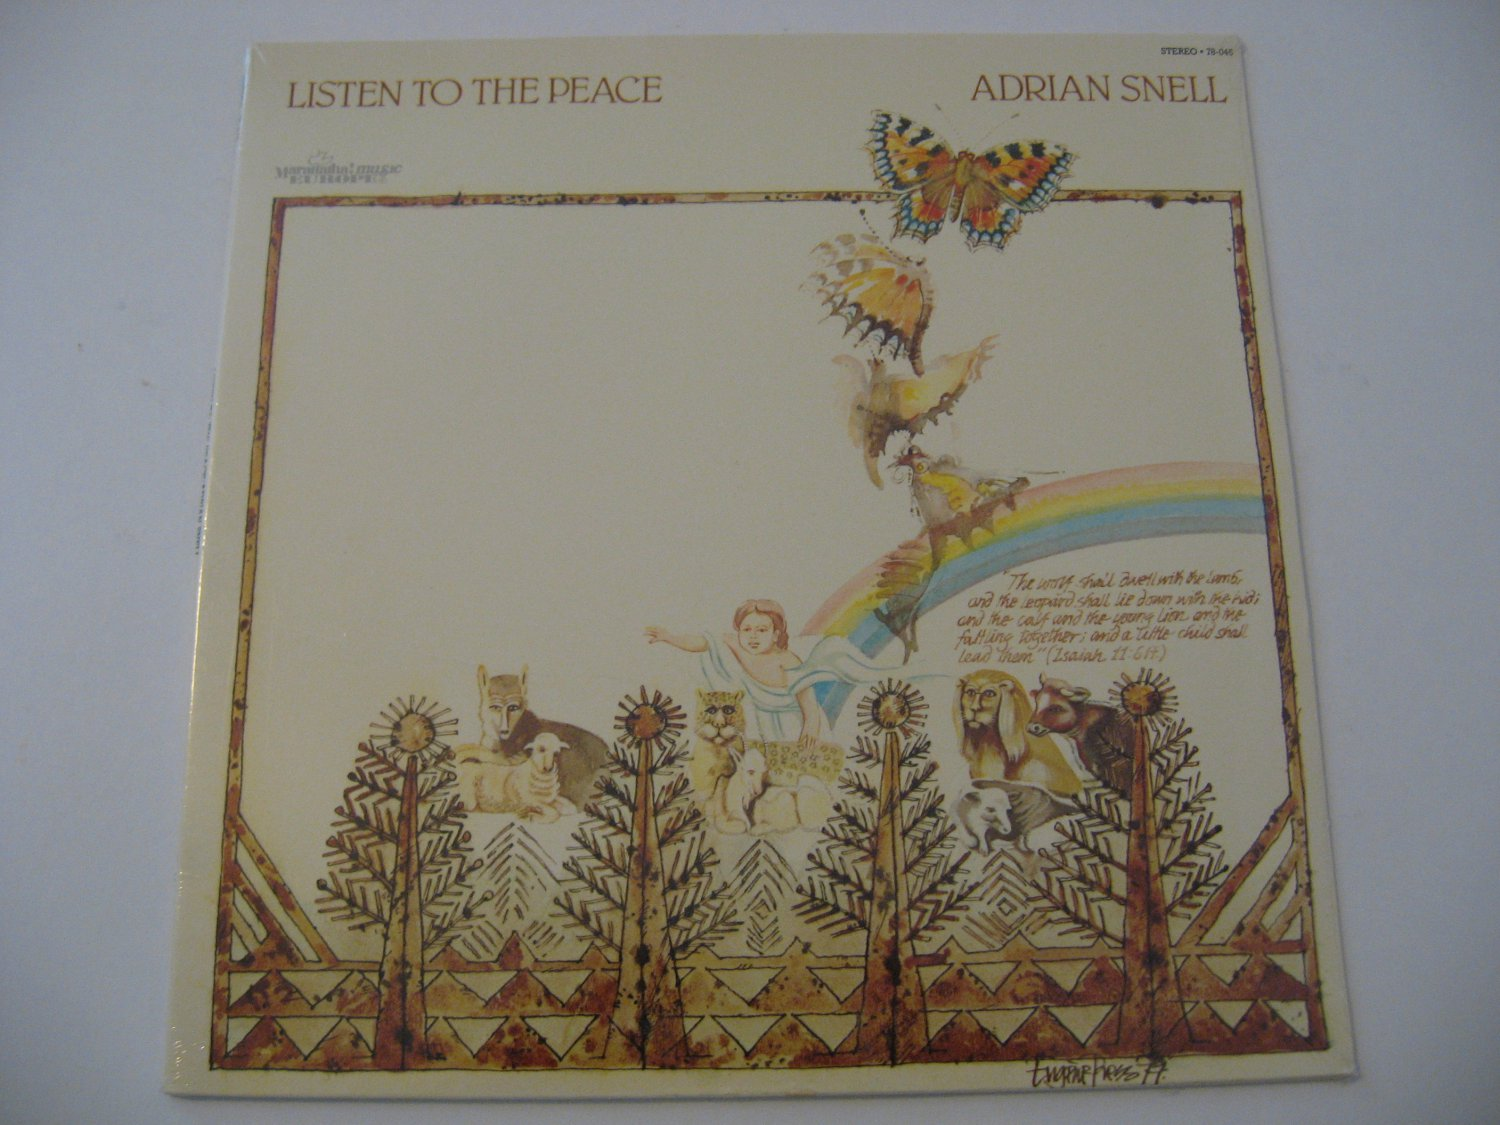 NEW! Factory Sealed - Adrian Snell - Listen To The Peace - Circa 1978